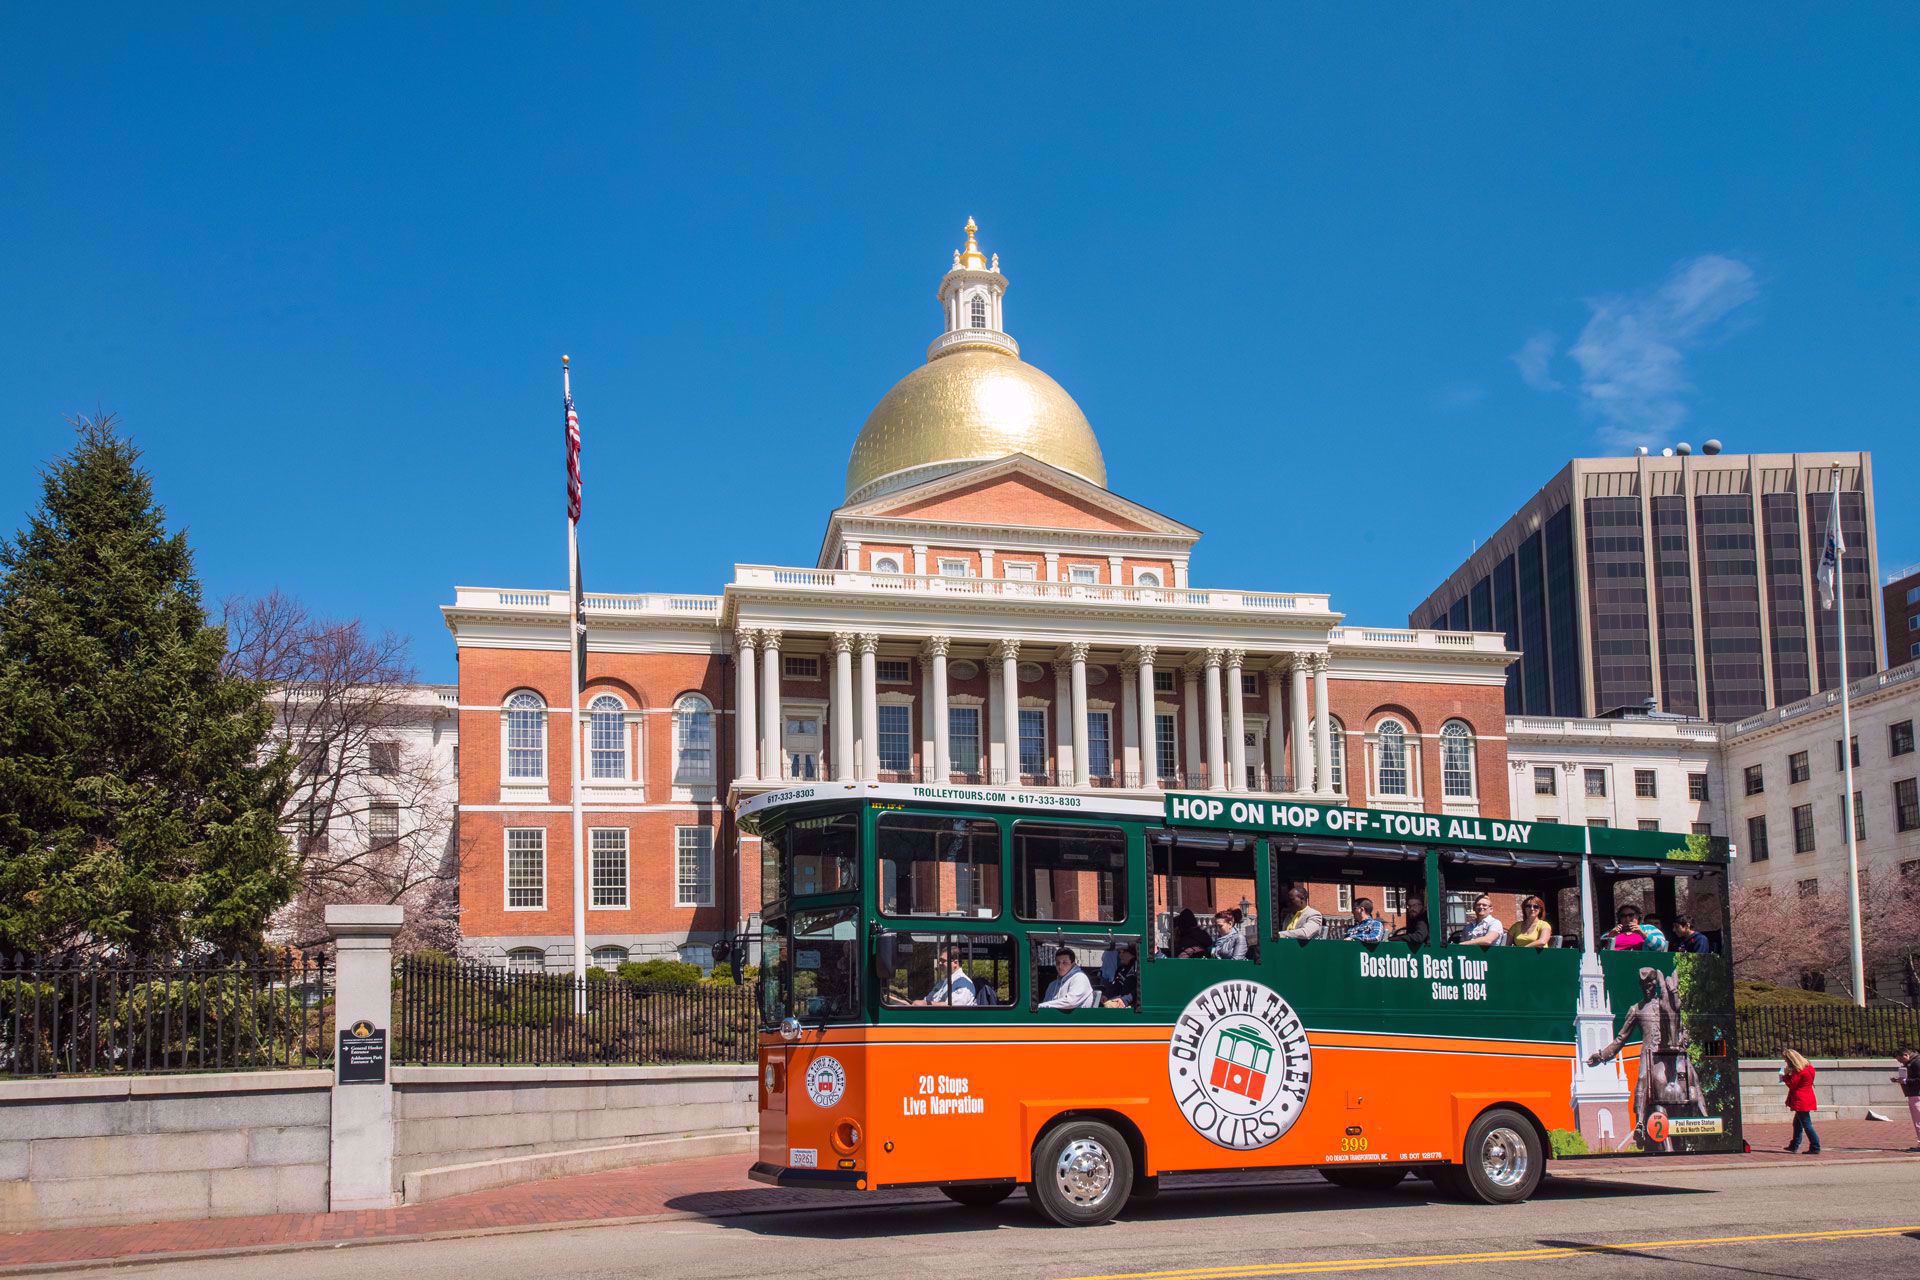 Discover the history of Boston